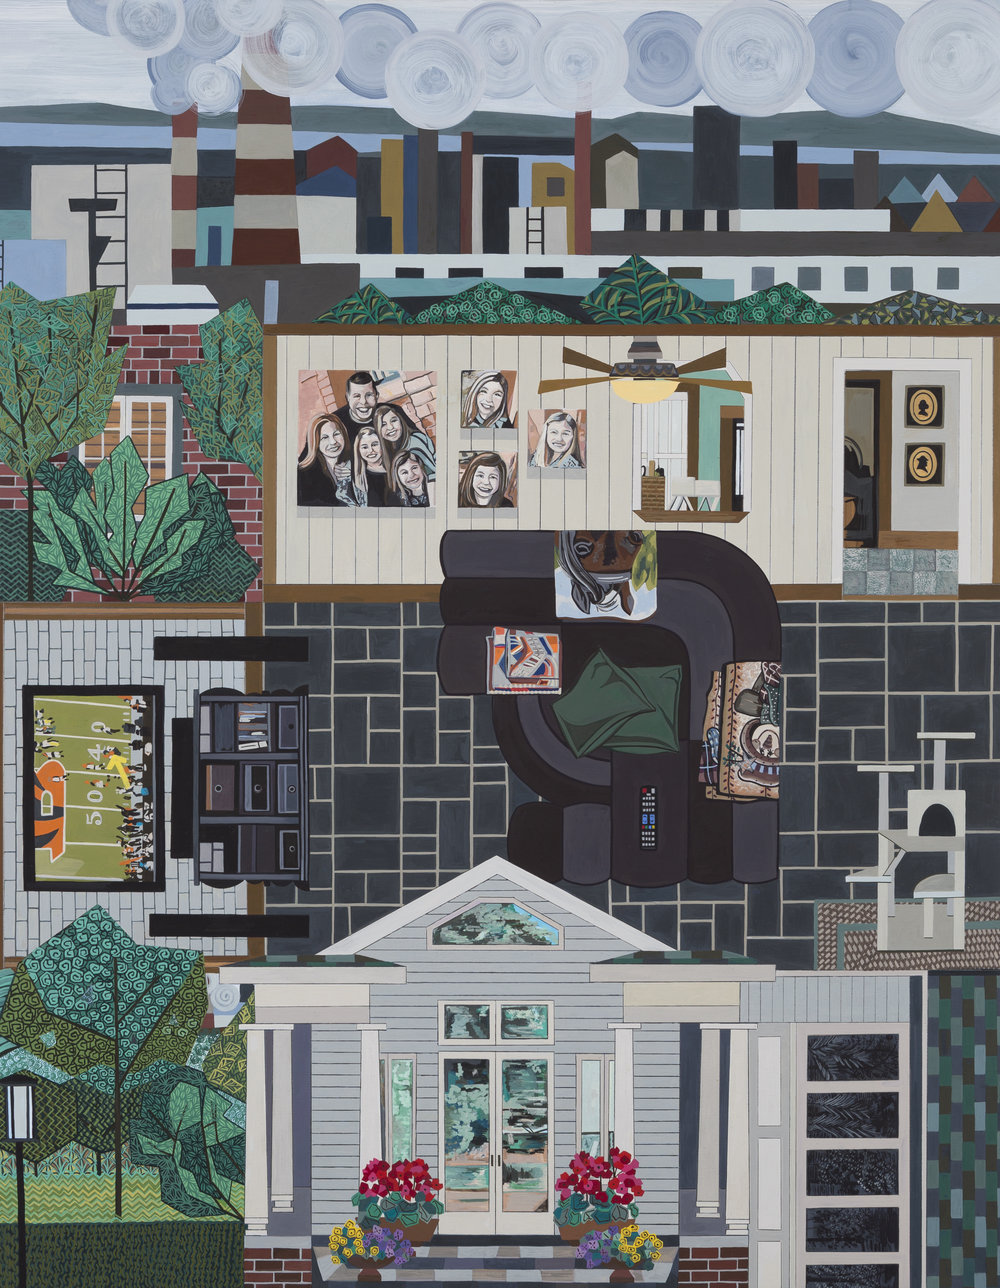 Ann Toebbe  Family Room (Sister) , 2017  gouache, pencil and paper collage on panel  28h x 22w in.